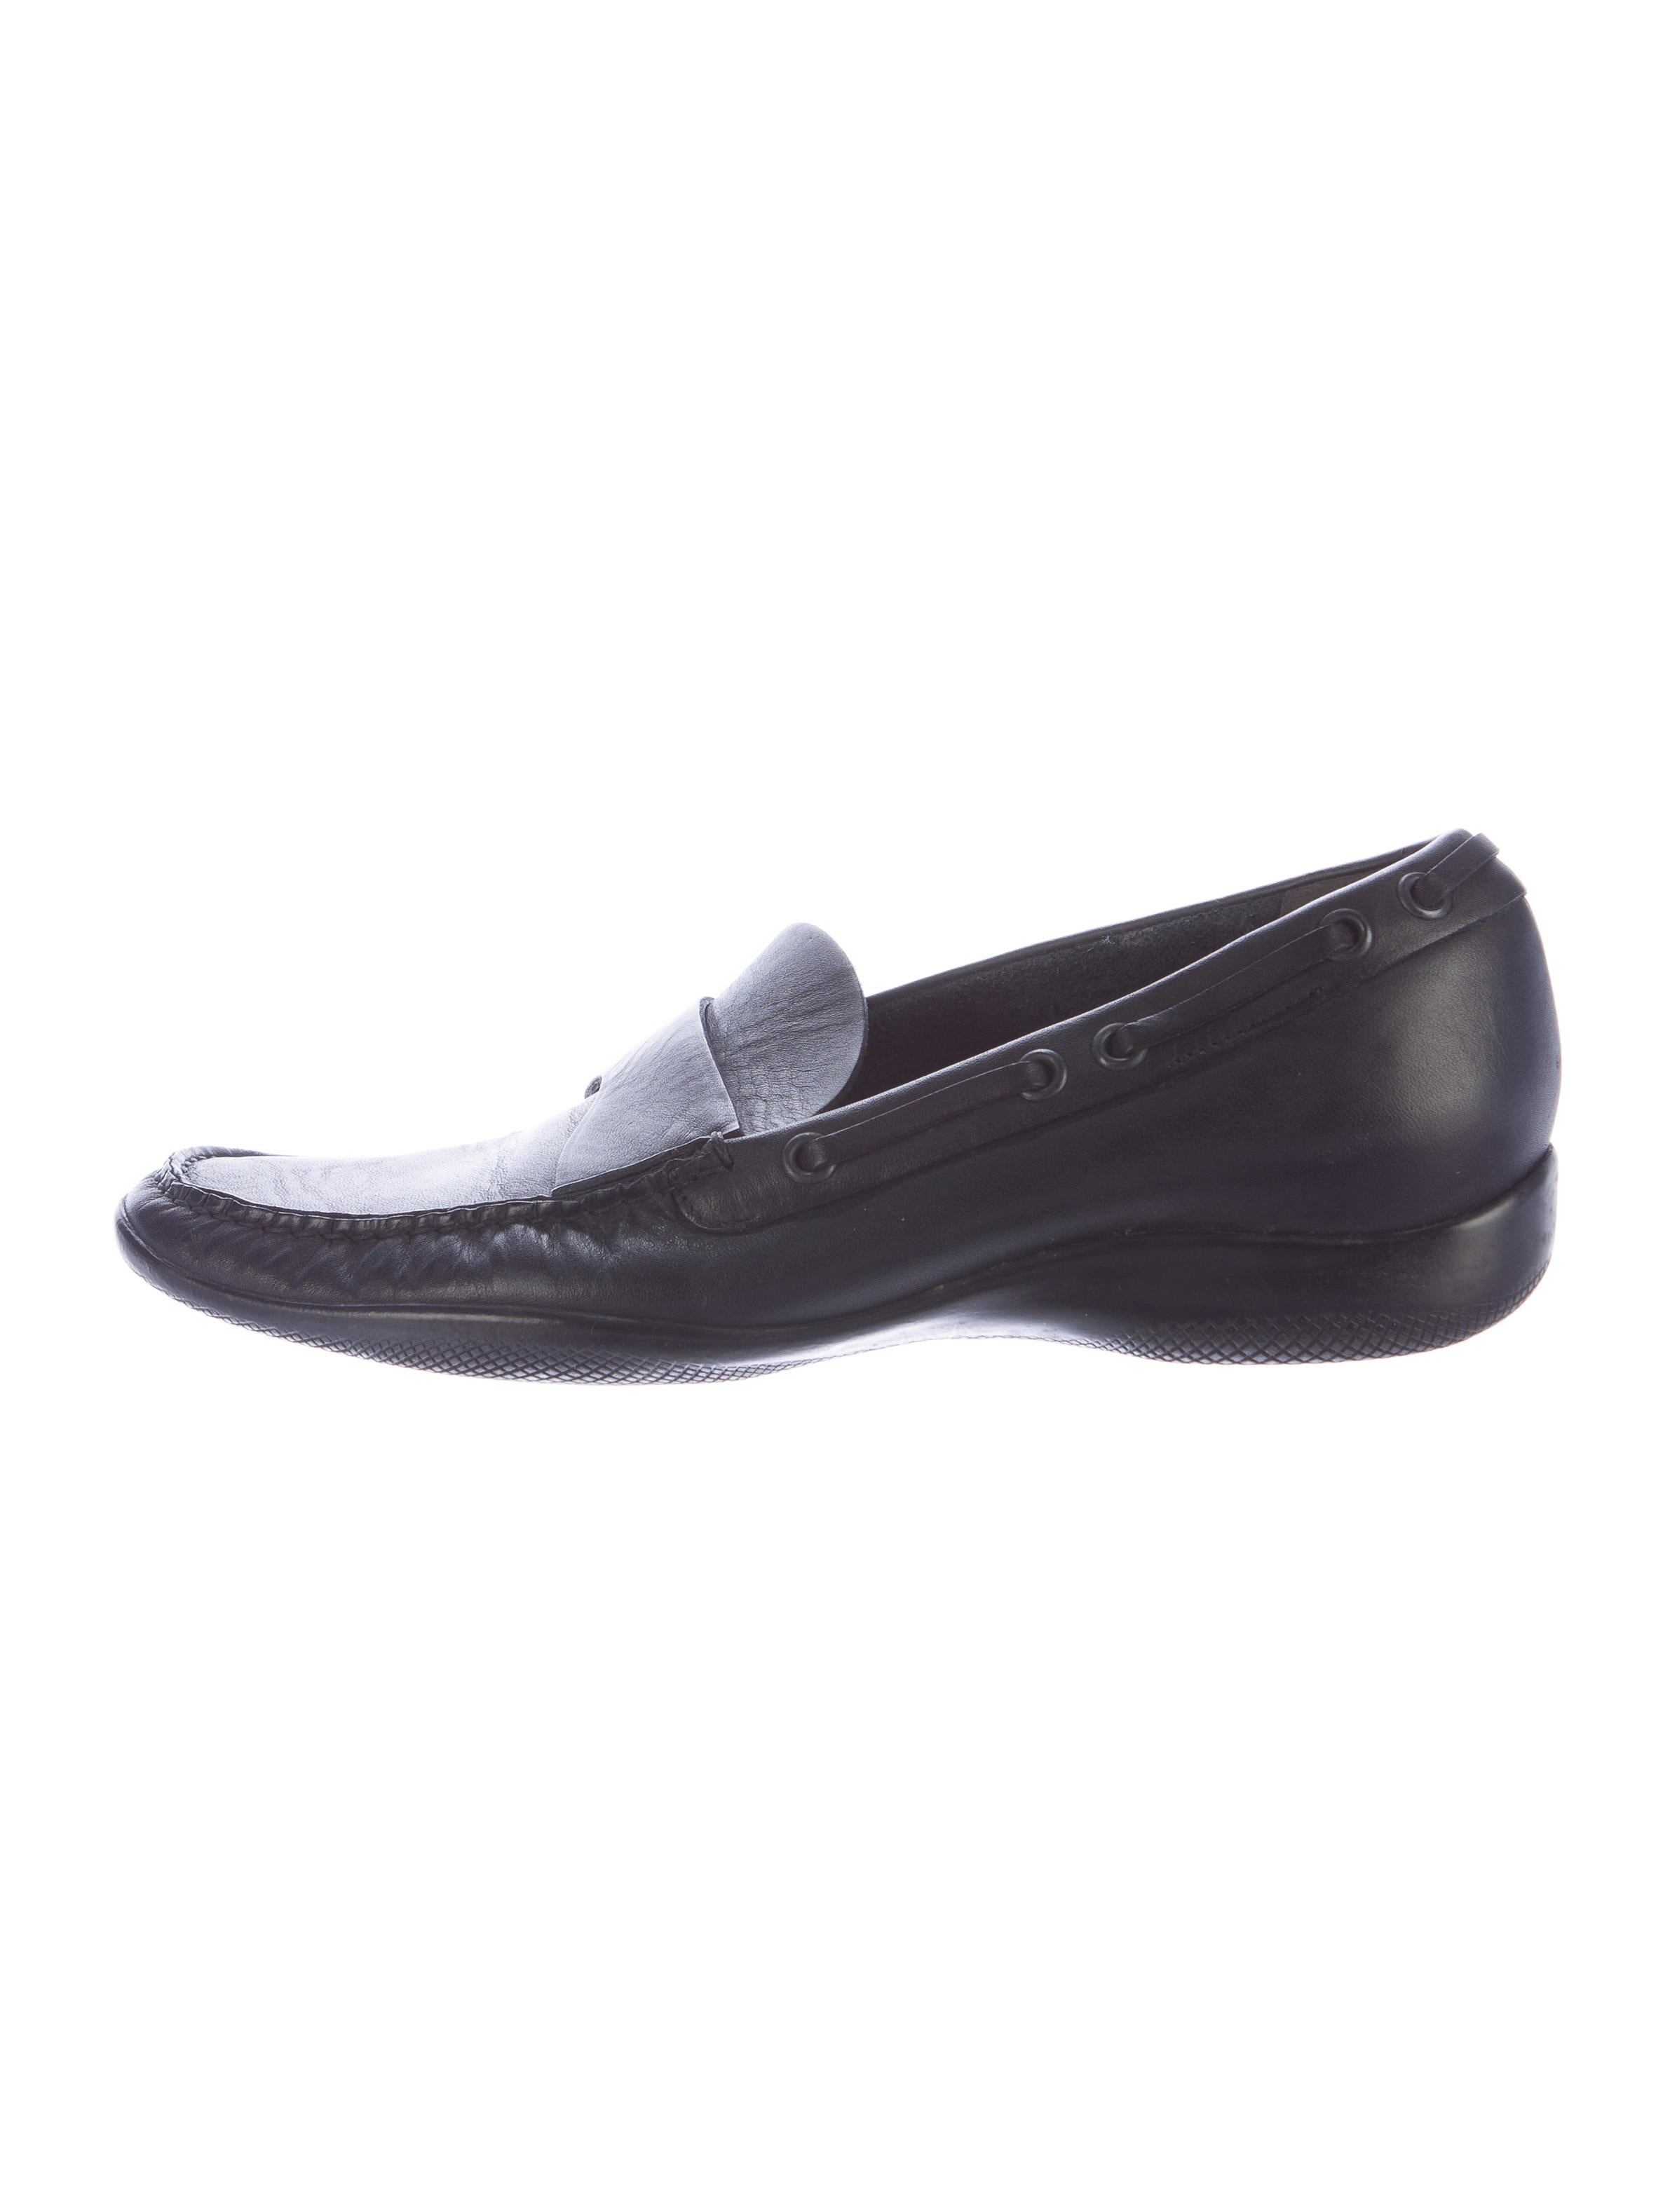 Prada Sport Square-Toe Leather Loafers real cheap sale explore cheap sale Manchester 68u2yv